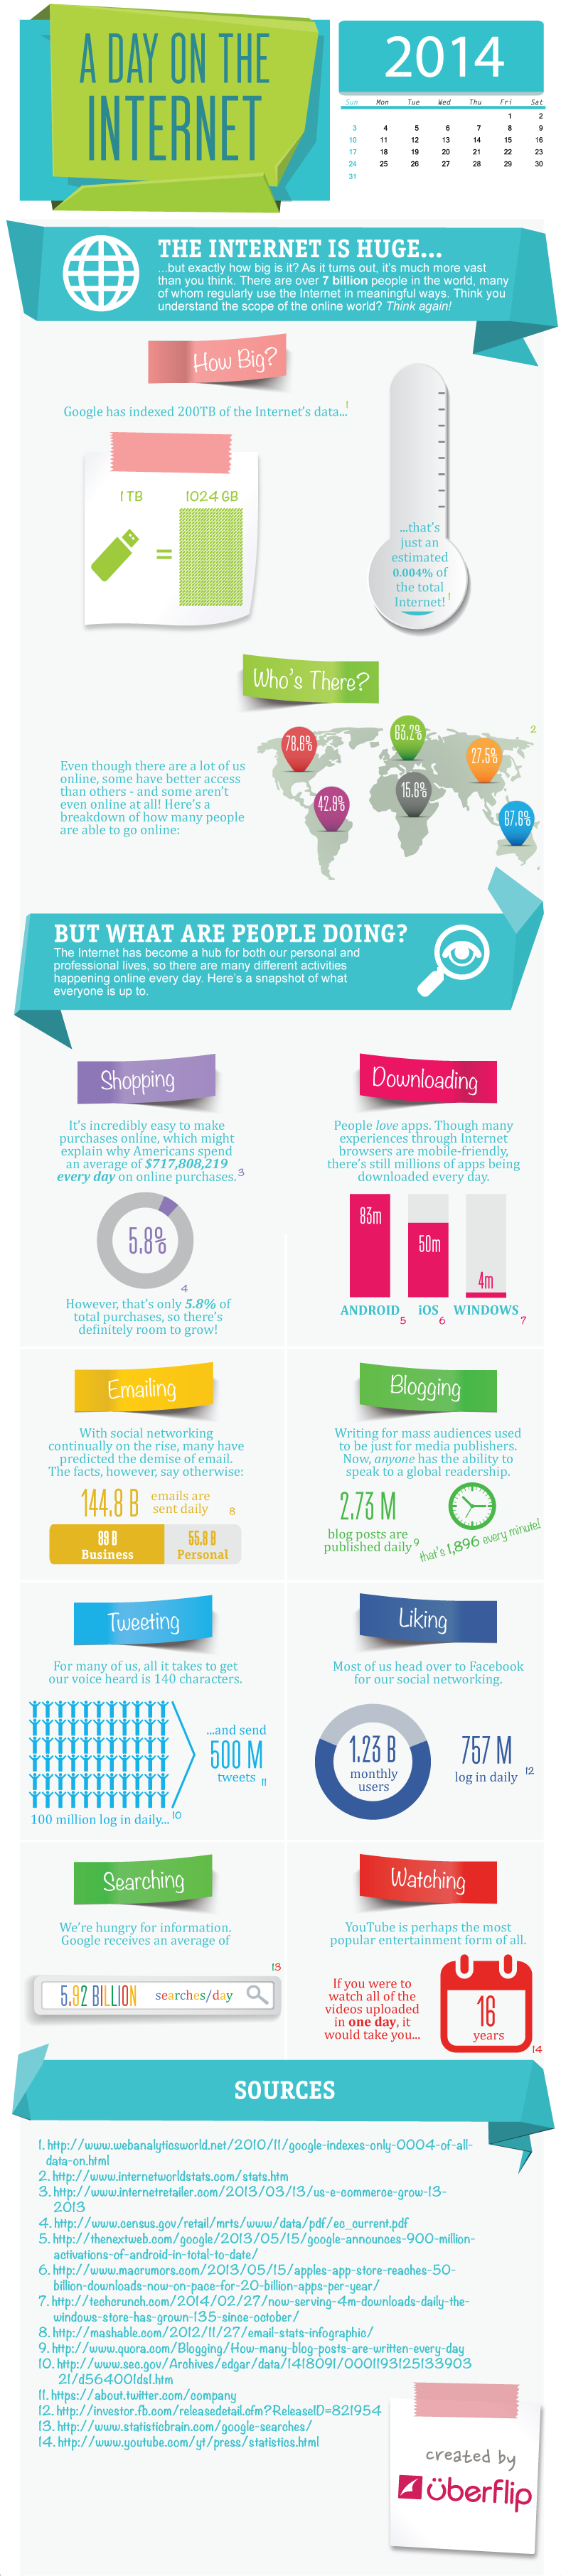 A Day In The Life Of The #SocialMedia in 2014 - #Infographic #Facebook #Twitter